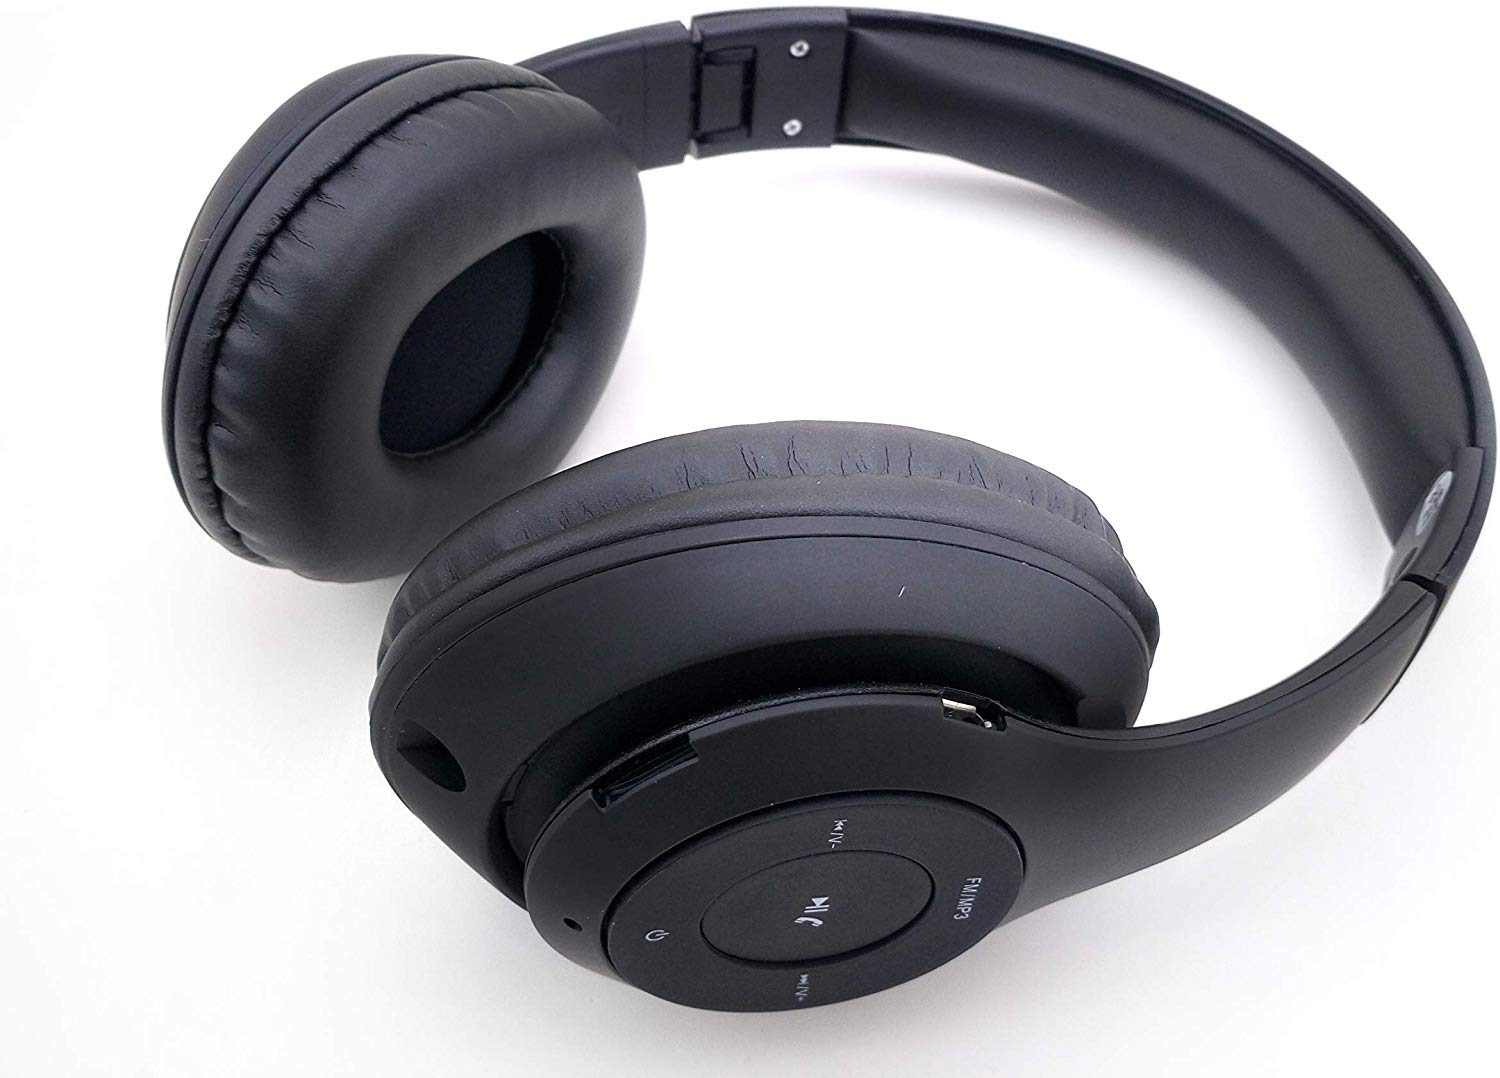 Adcom Shuffle Over-Ear Wireless Bluetooth Headphones with Built-in Mic, Deep Bass & Passive Noise Cancellation (Black)